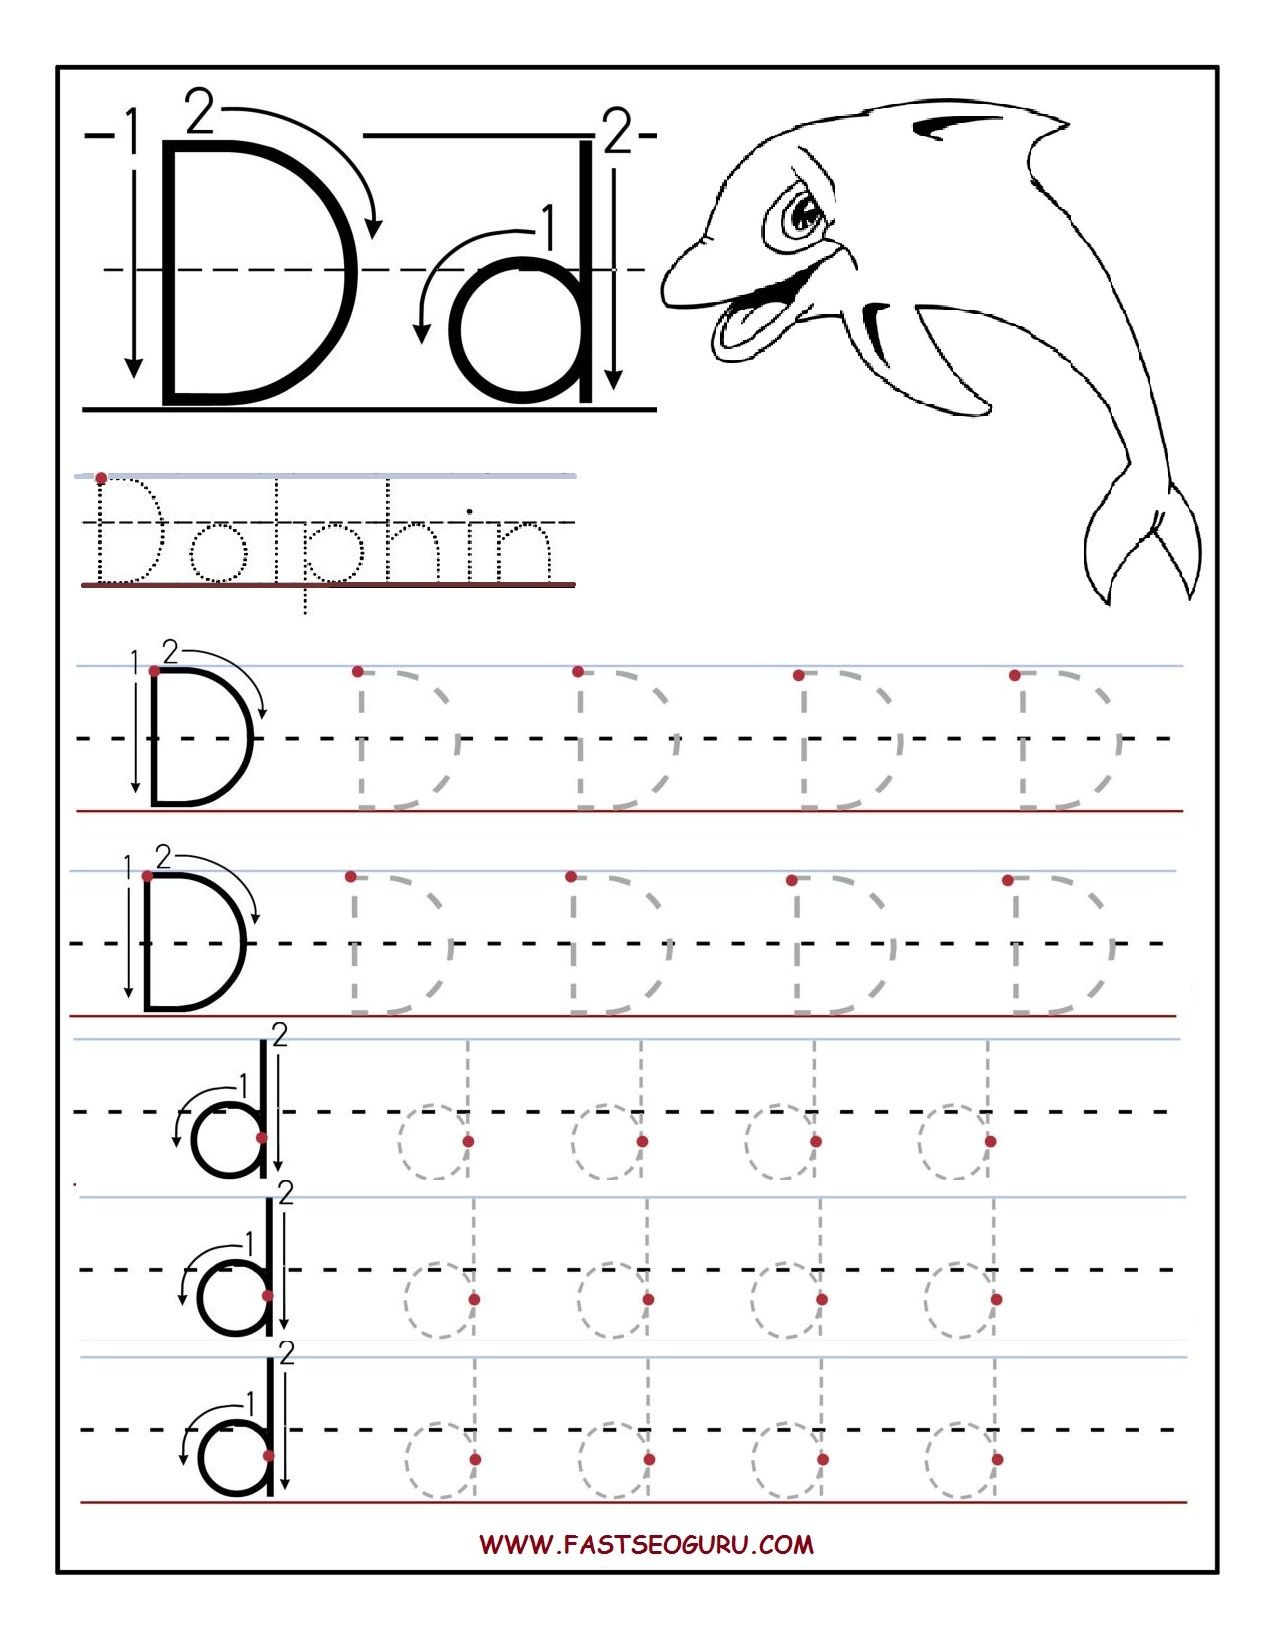 Uncategorized Letter D Worksheet 1000 images about worksheets on pinterest number tracing and tracing